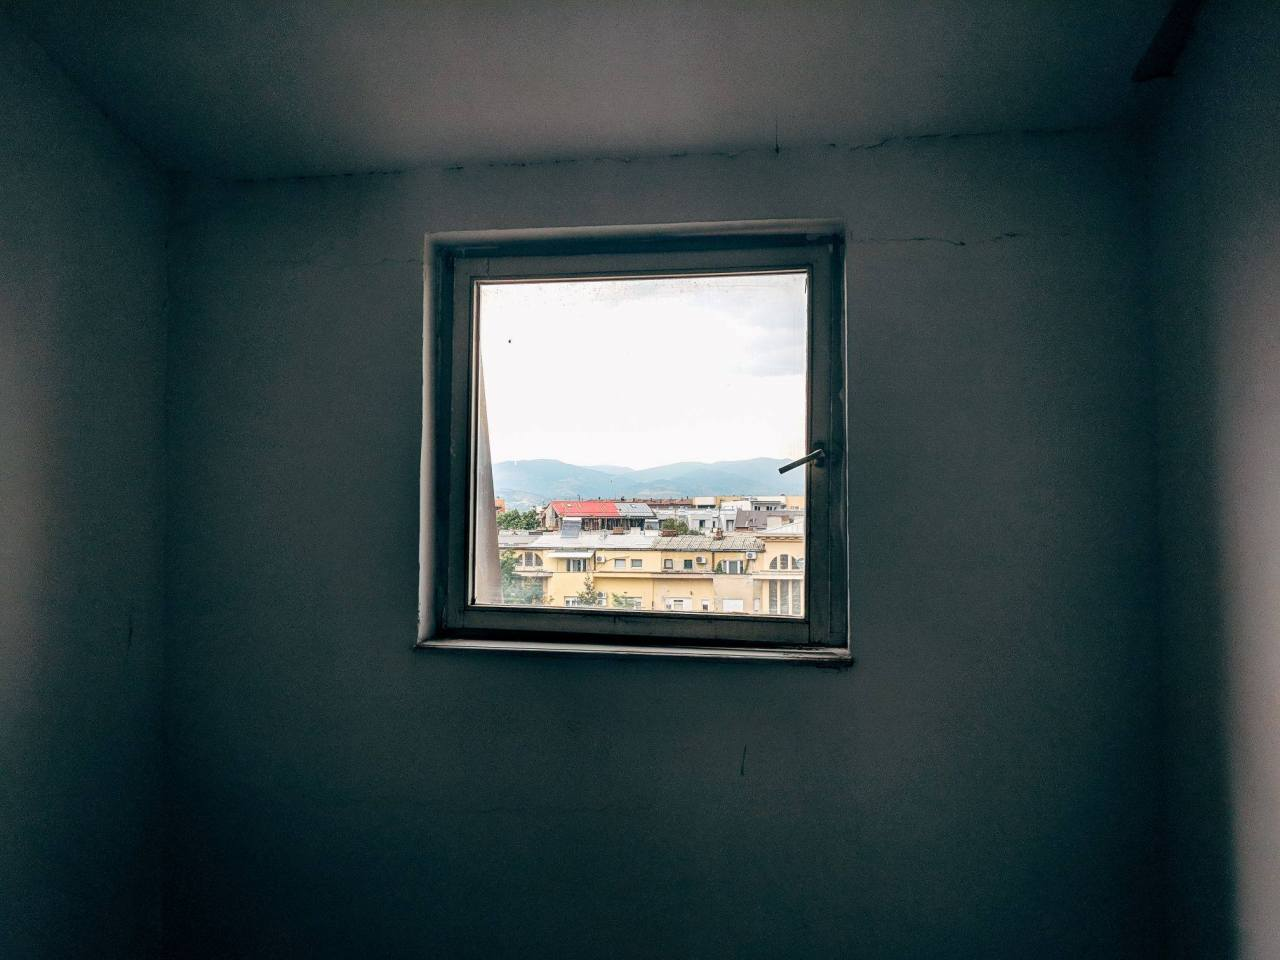 Tilt And Turn Windows Vs Casement Windows – What Are The Main Differences?